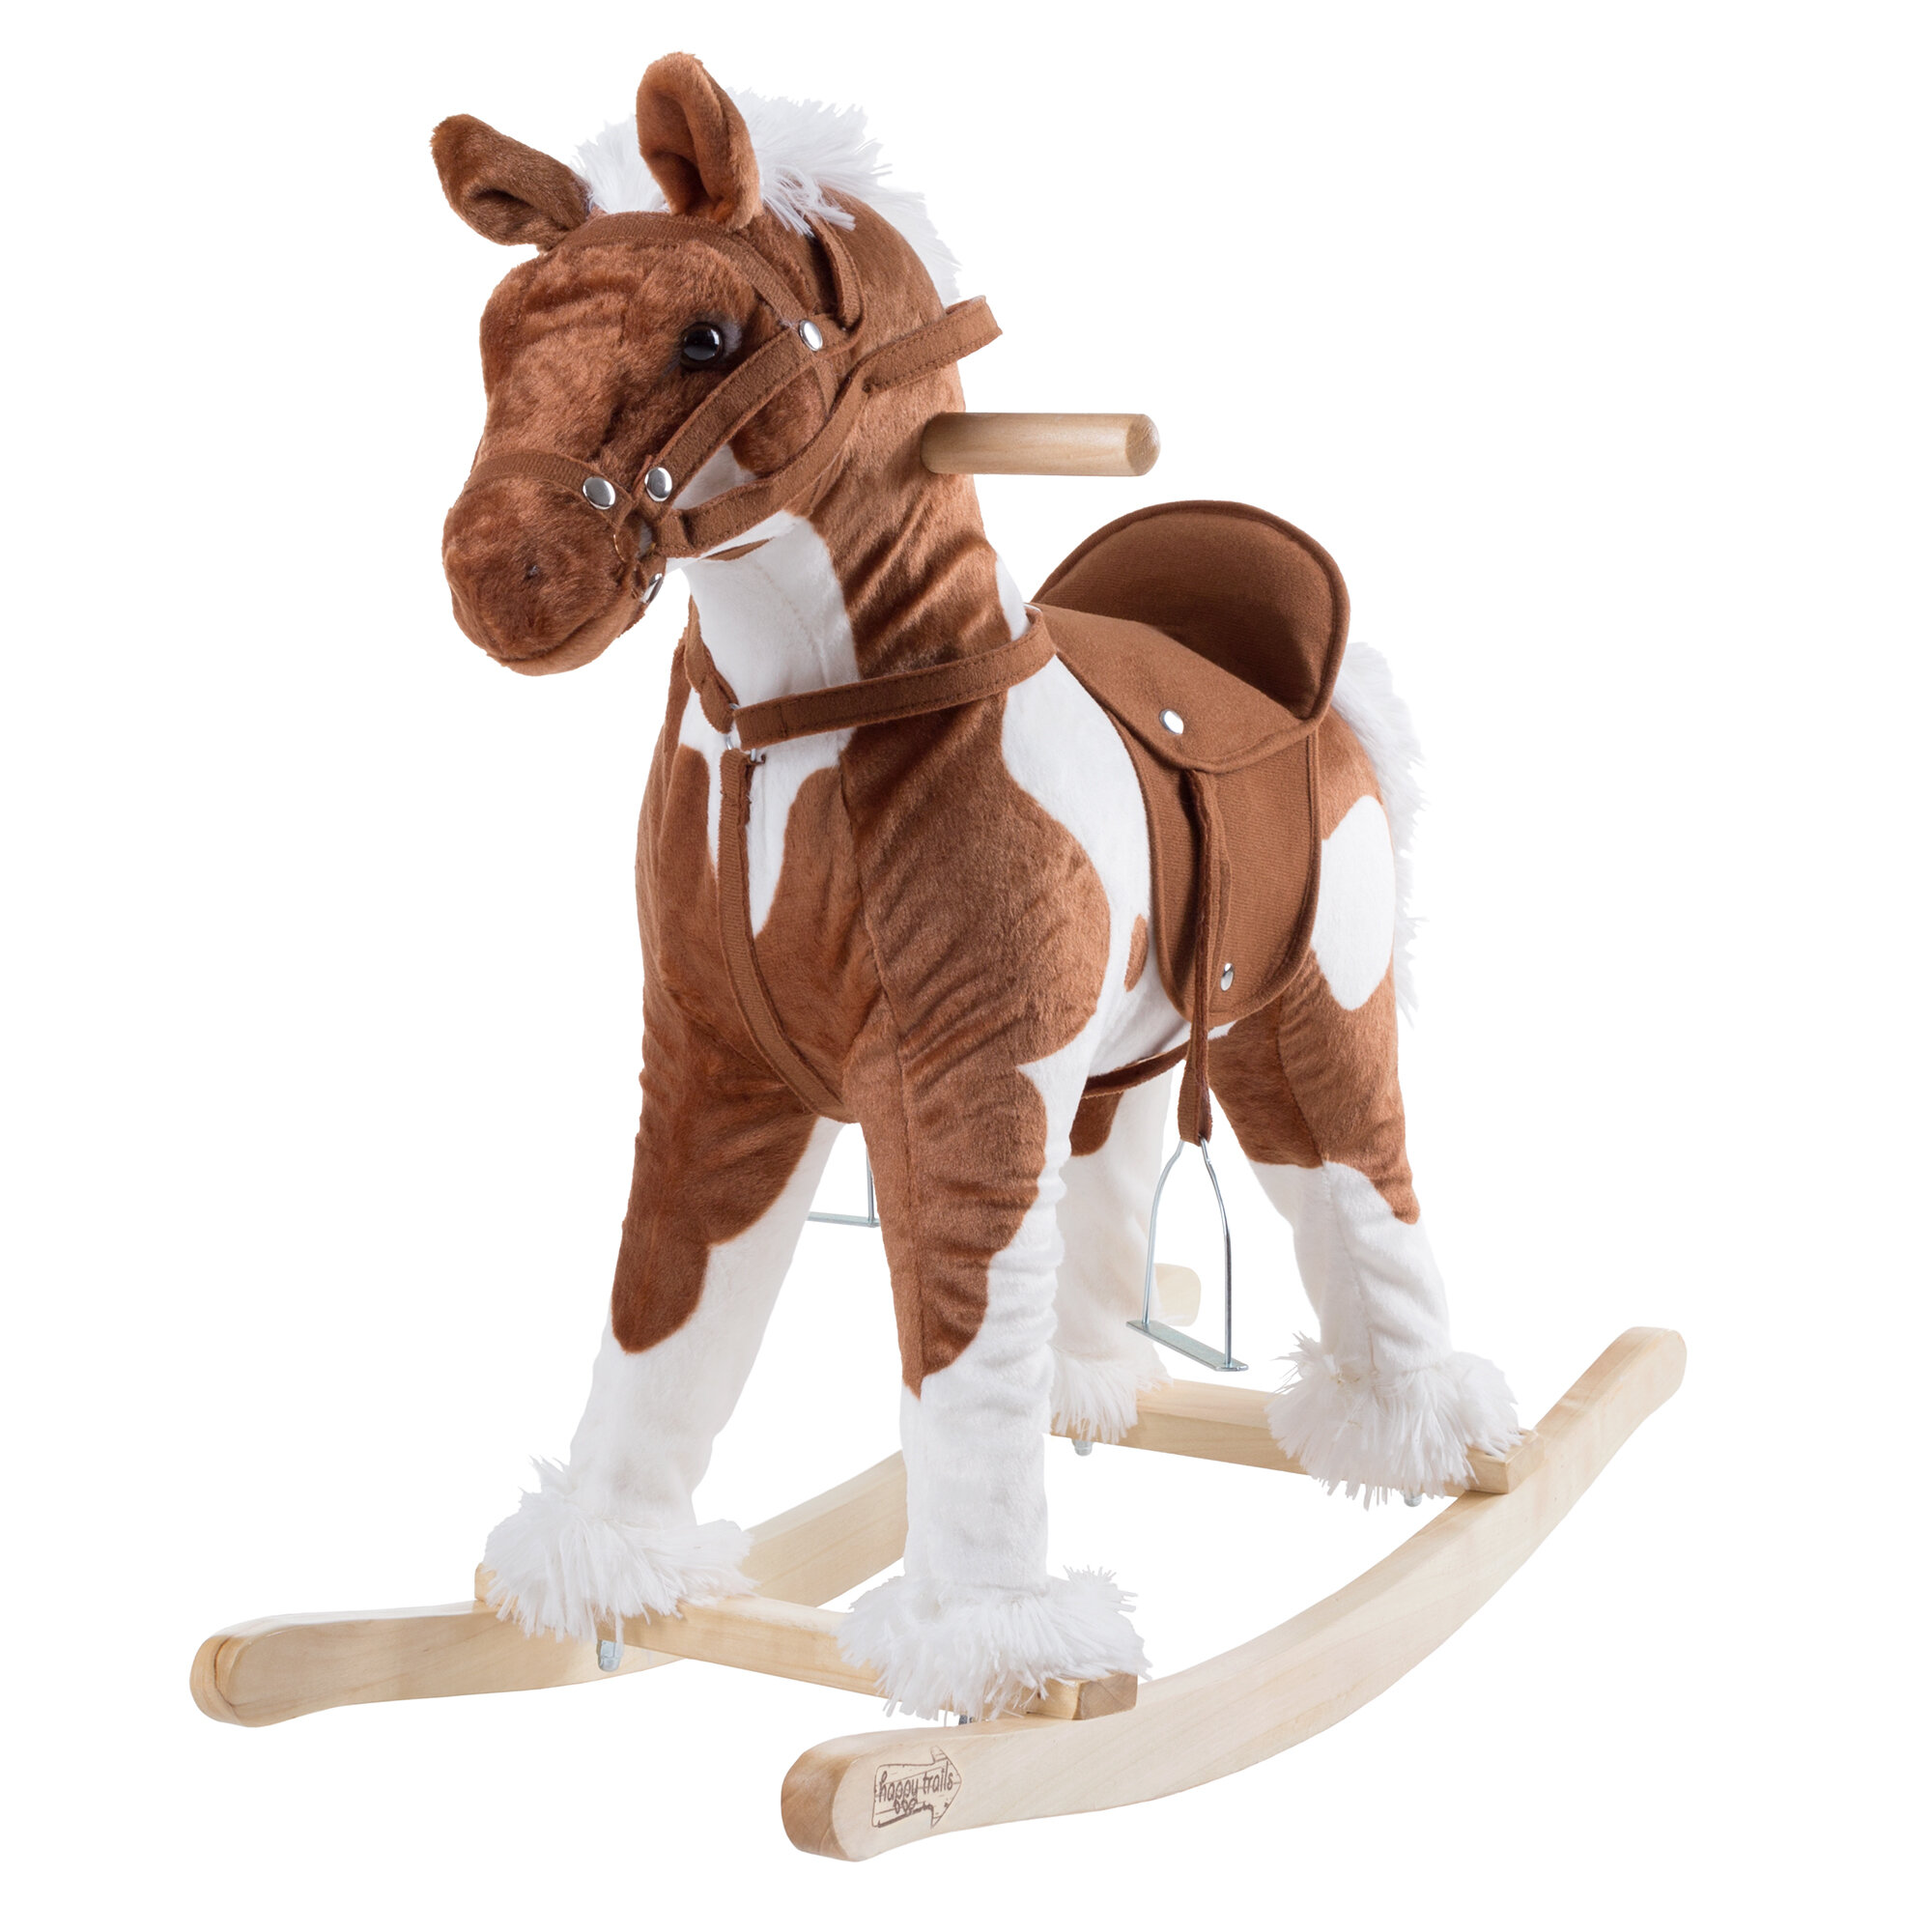 Clydesdale Wooden Rocking Horse